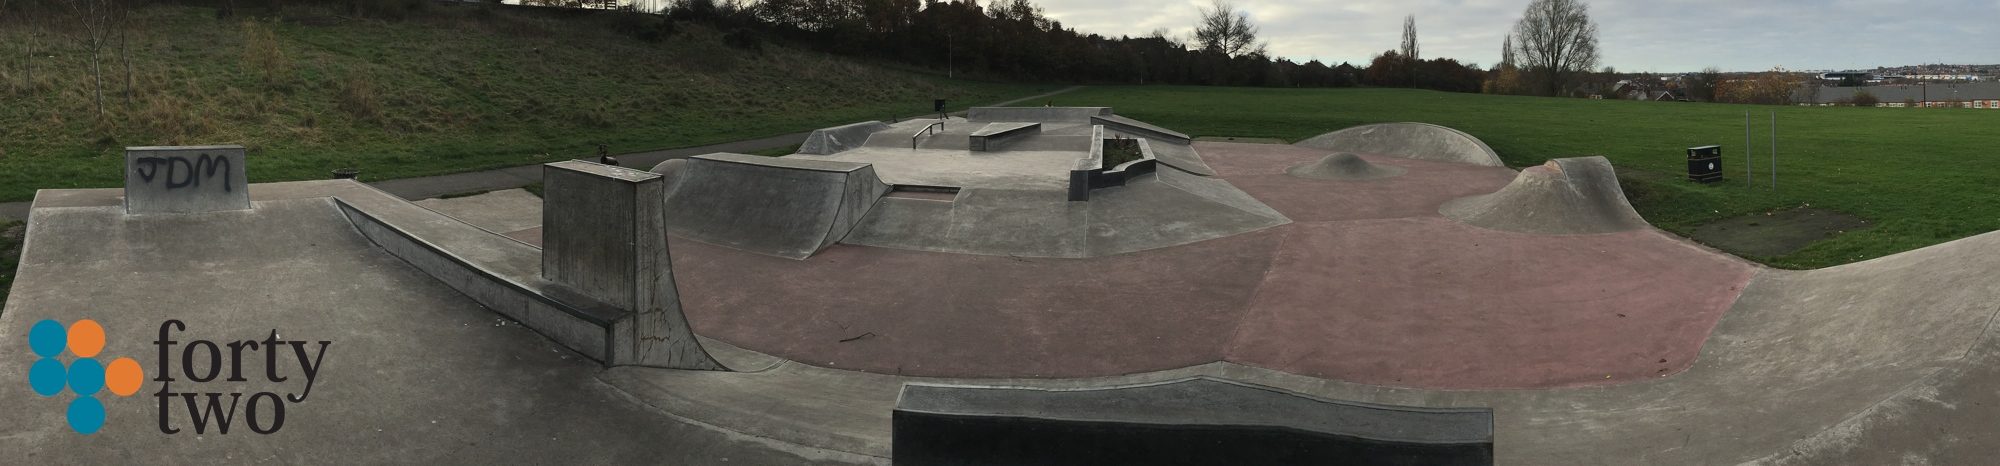 Mansfield Plaza Skateboard Park Image Two